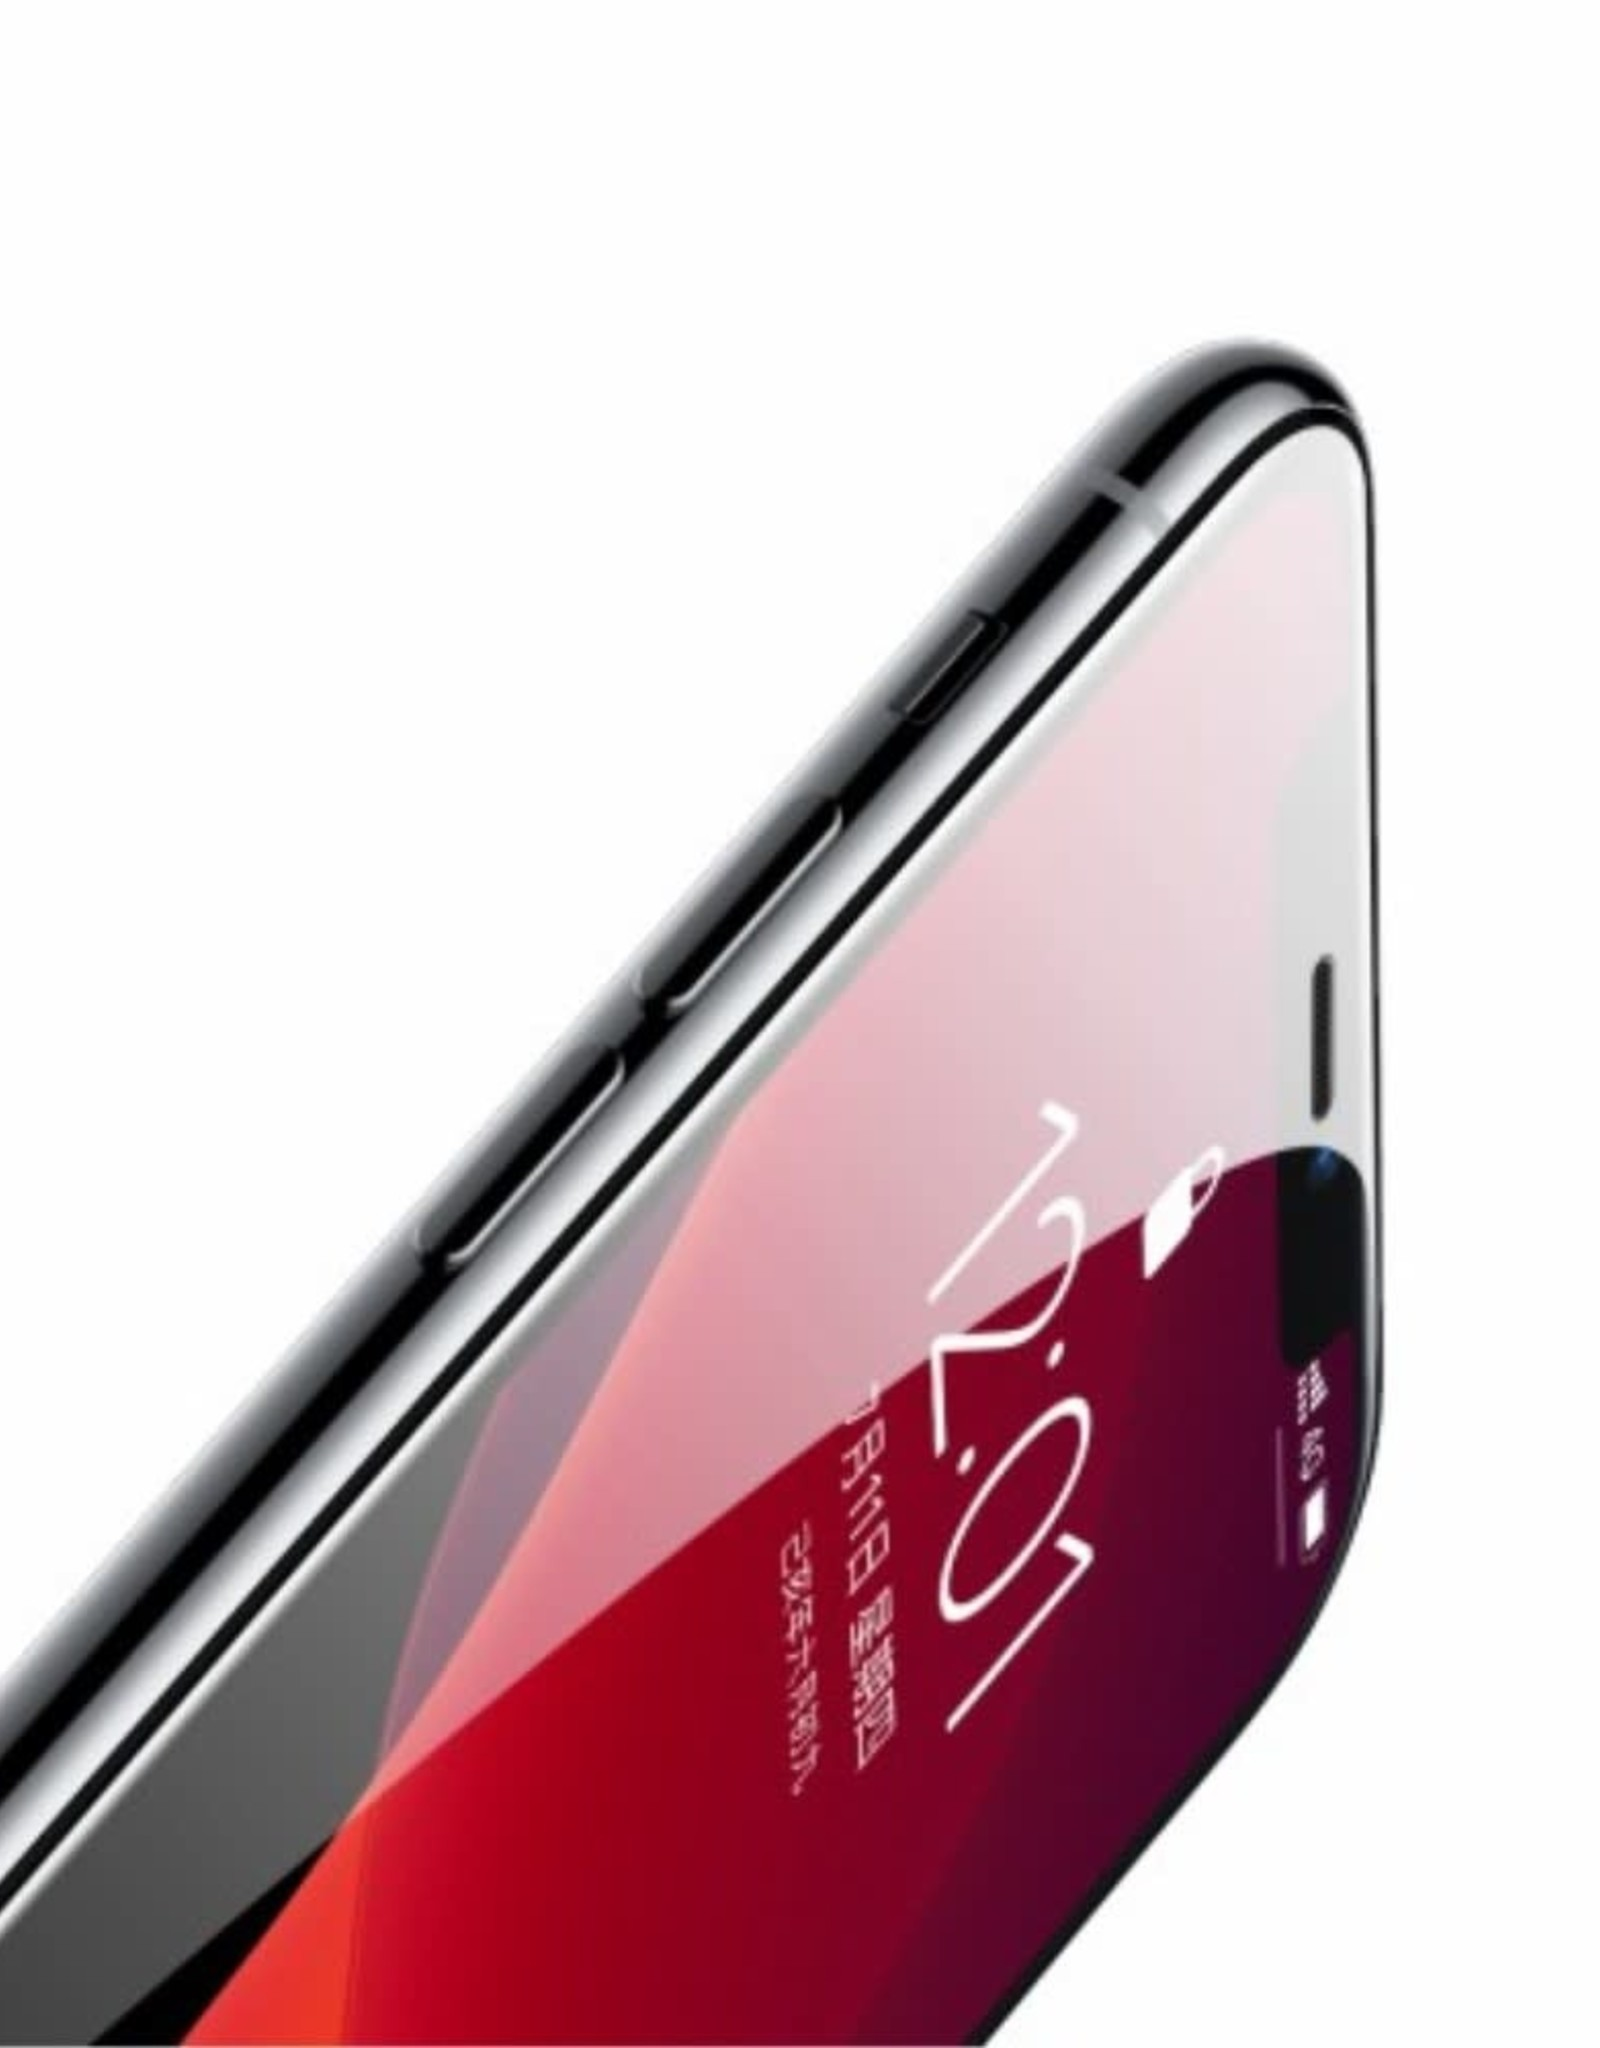 iPhone X / Xs / 11 Pro Premium Tempered Glass Screen Protector (Retail)